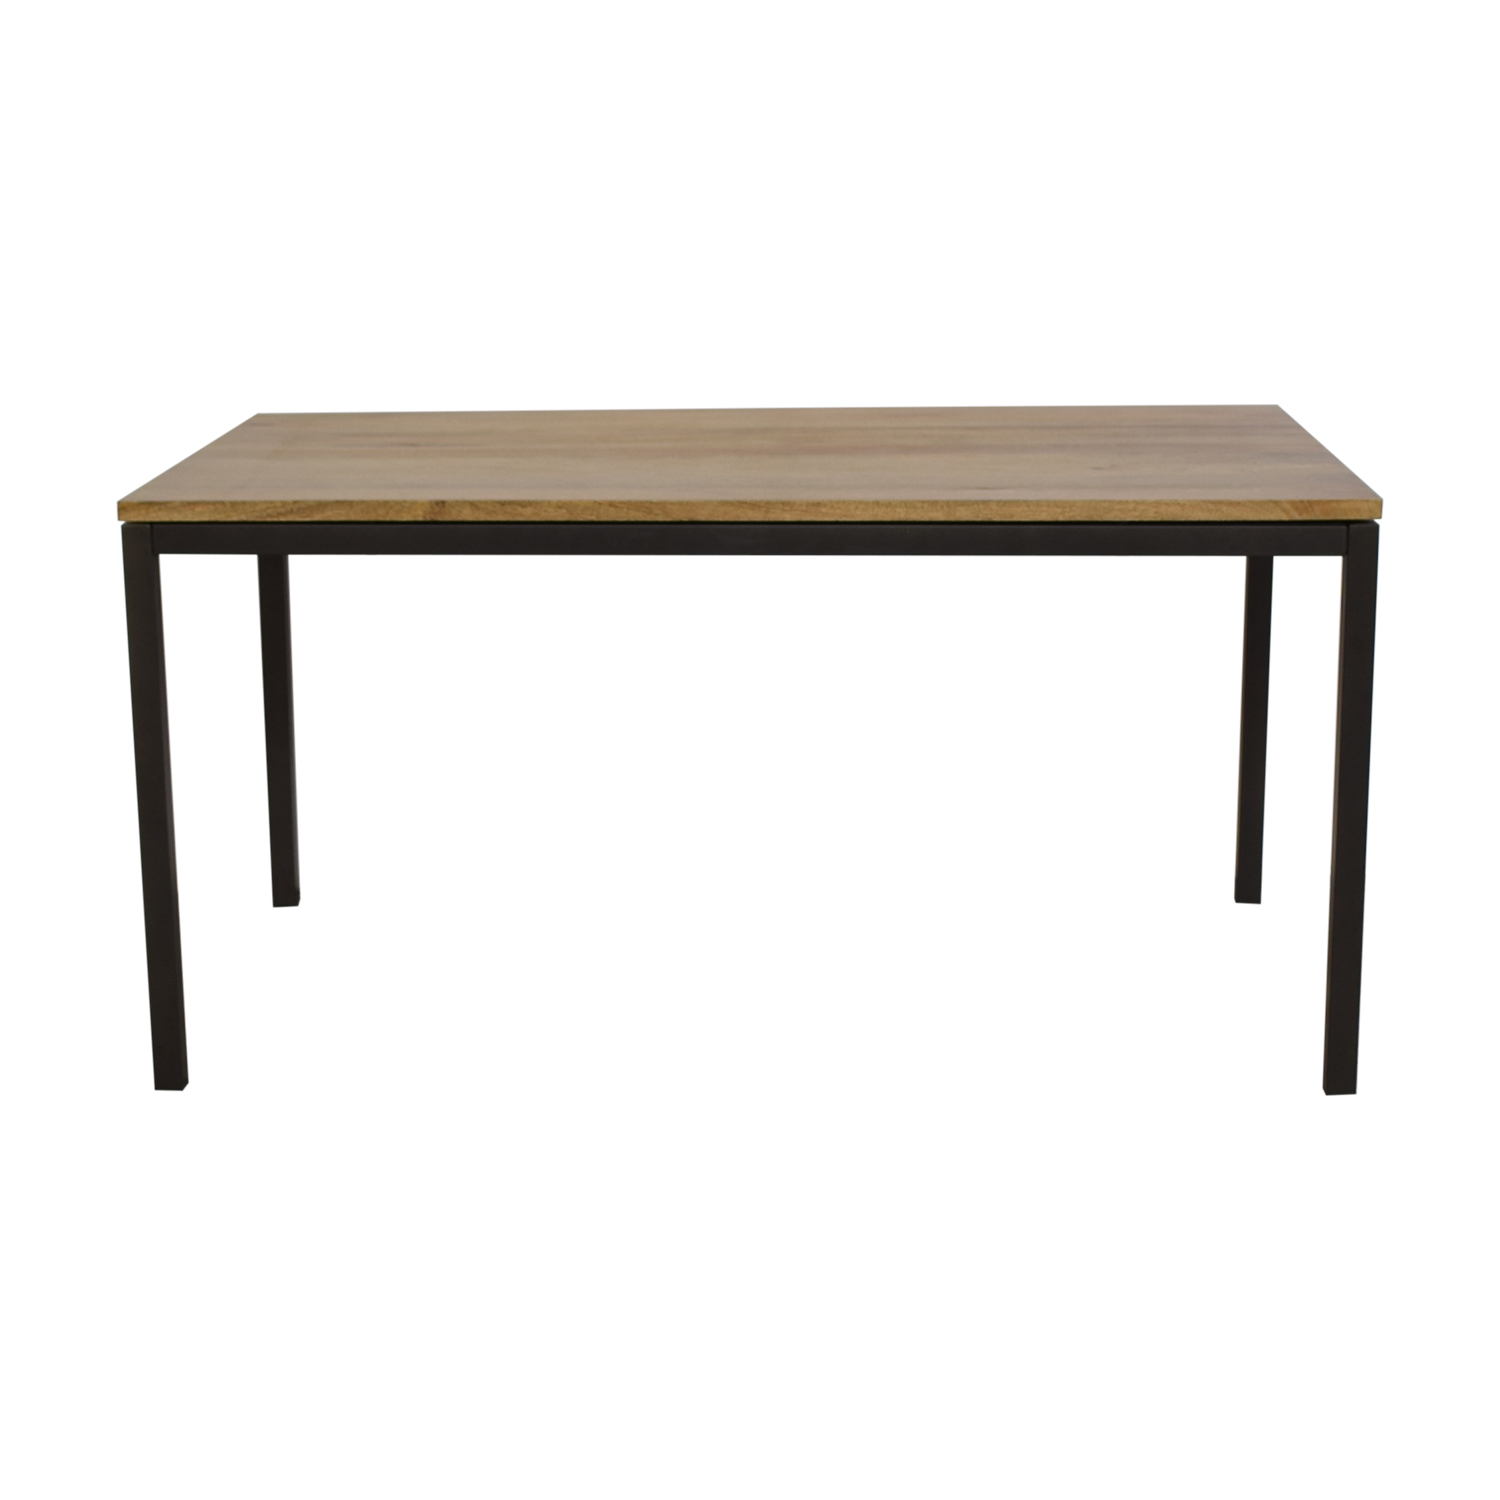 West Elm West Elm Box Frame Dining Table on sale